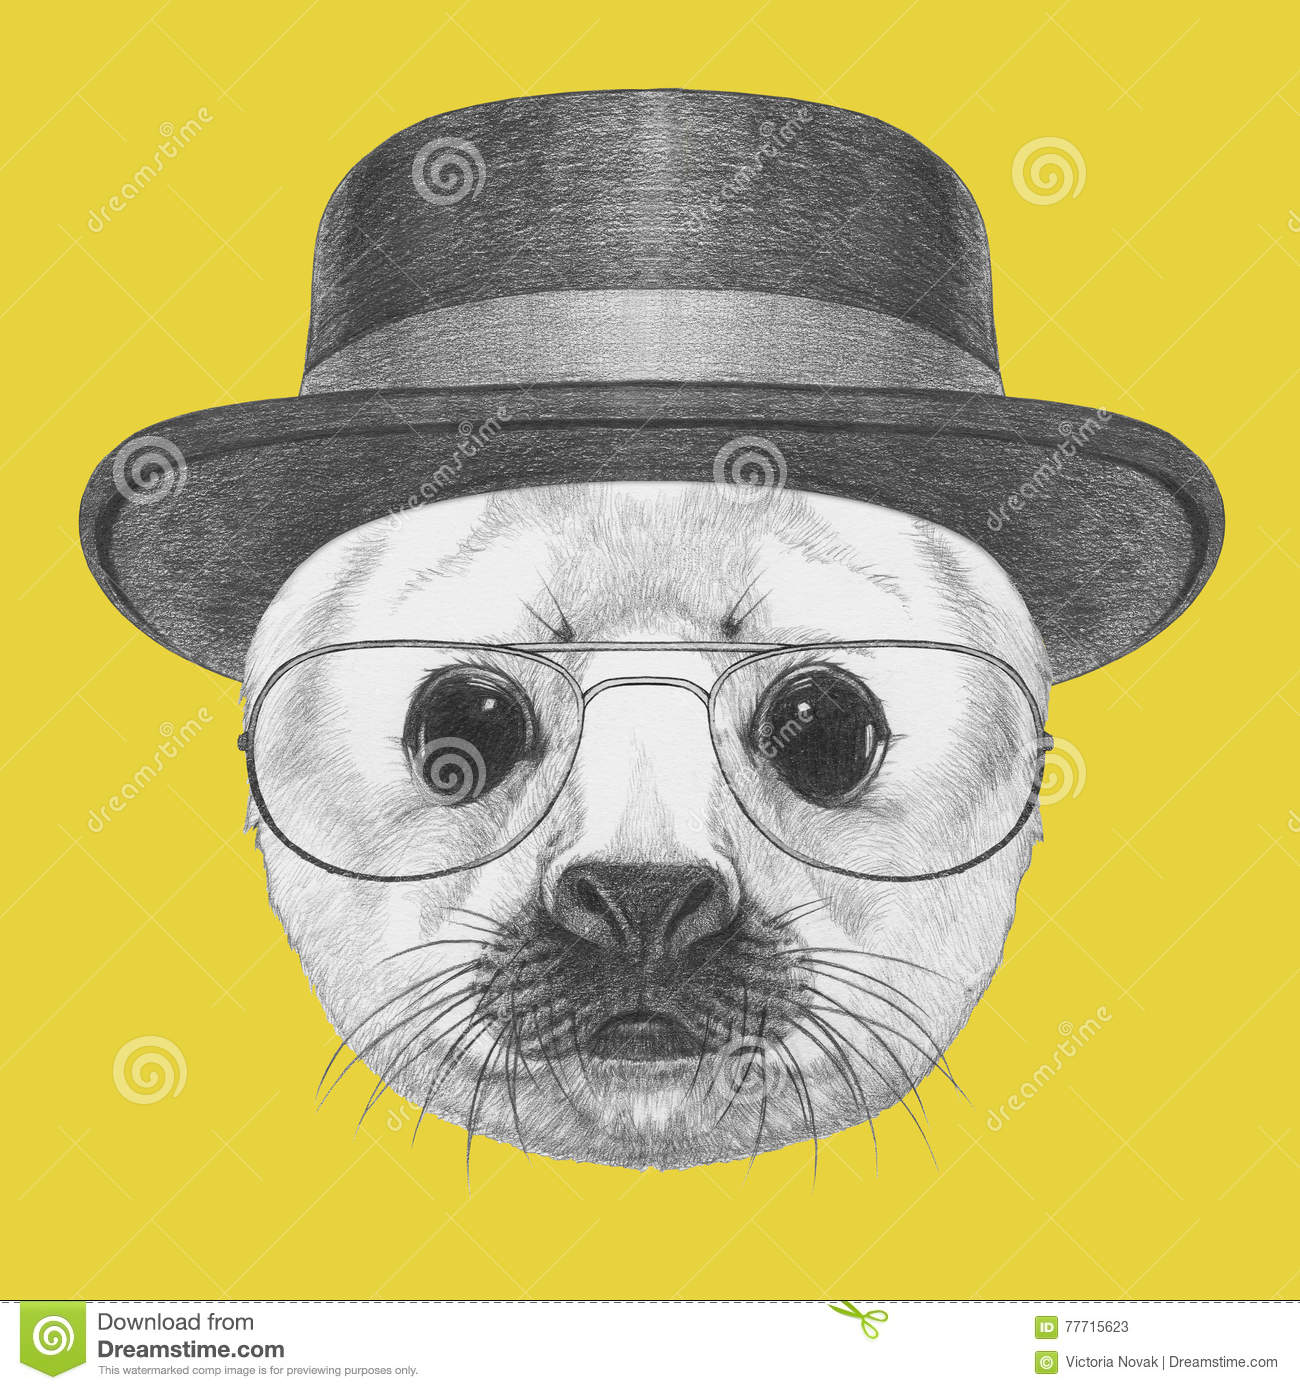 efdbe81f609 Portrait of Baby Fur Seal with hat and glasses. Royalty-Free Illustration